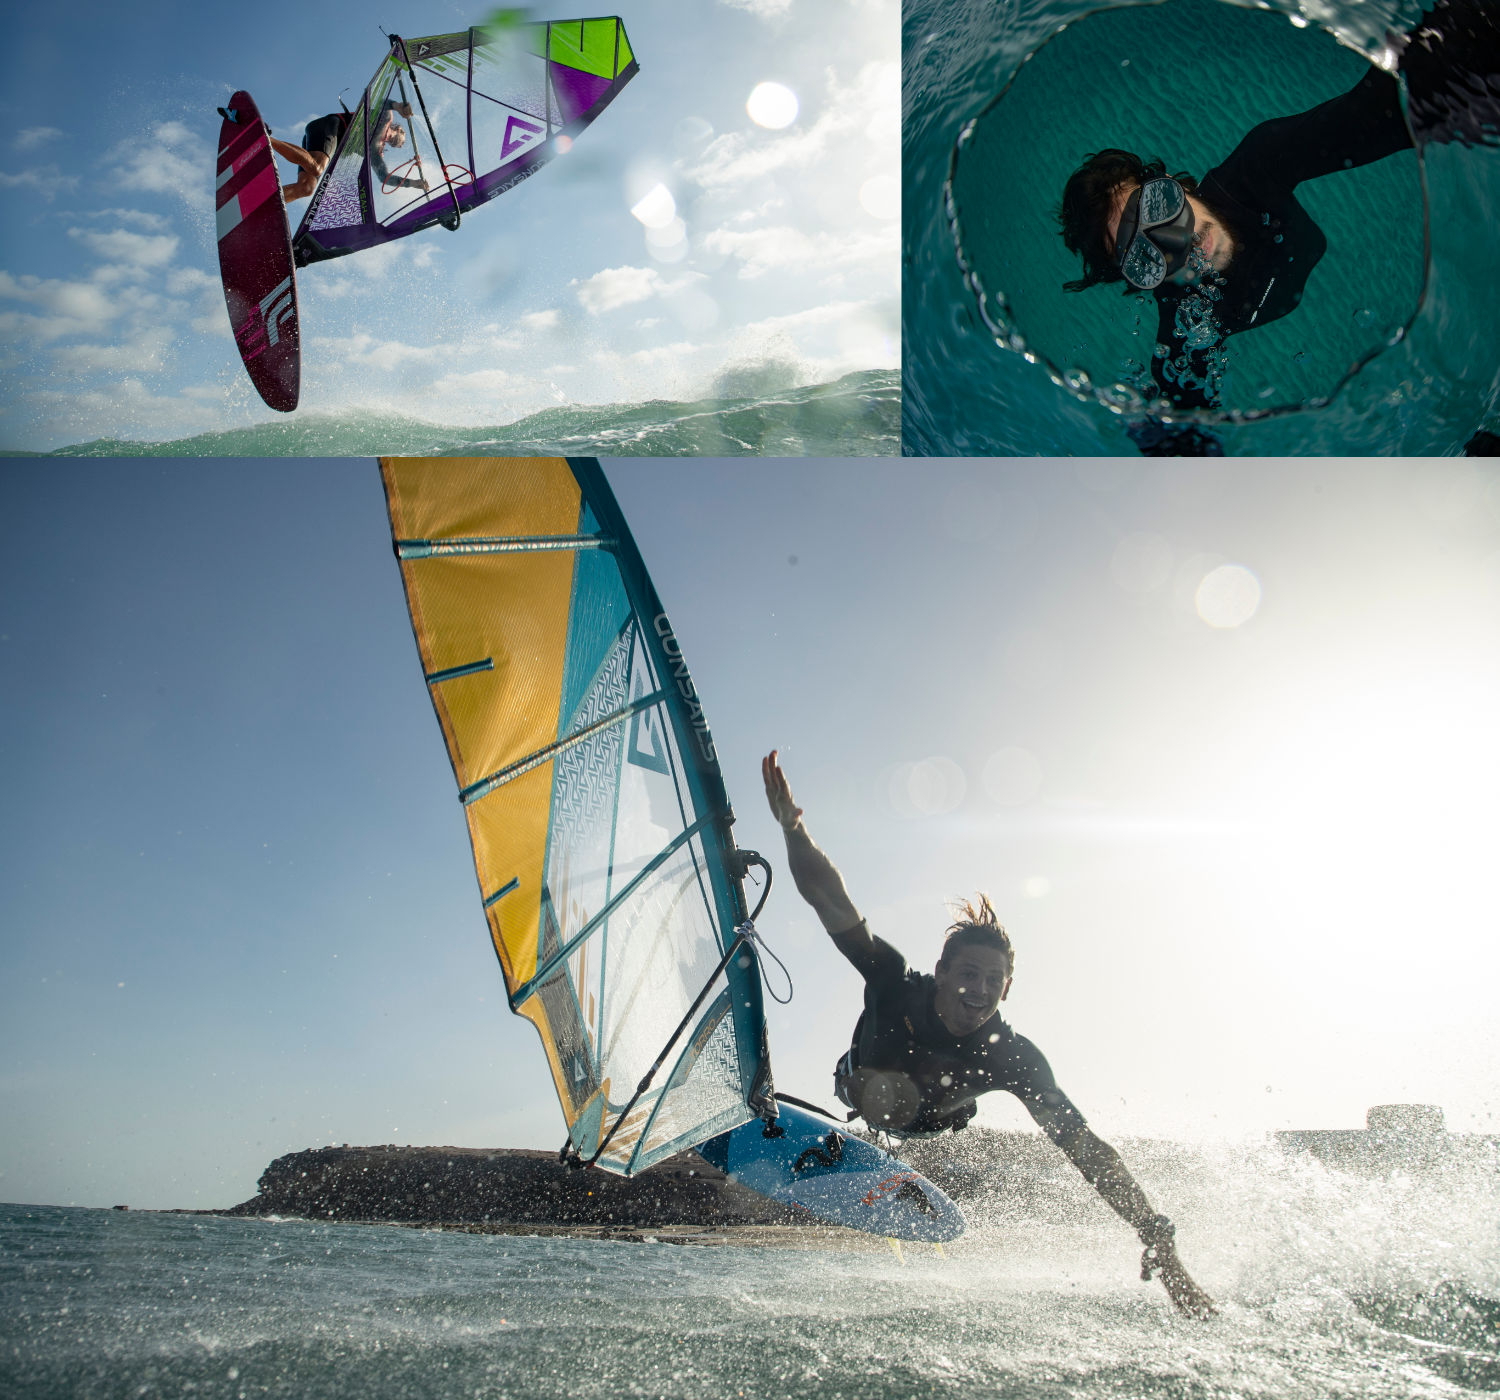 GUNSAILS | Seal Membrane - Windsurf Wave Segel in Membrane Konstruktion